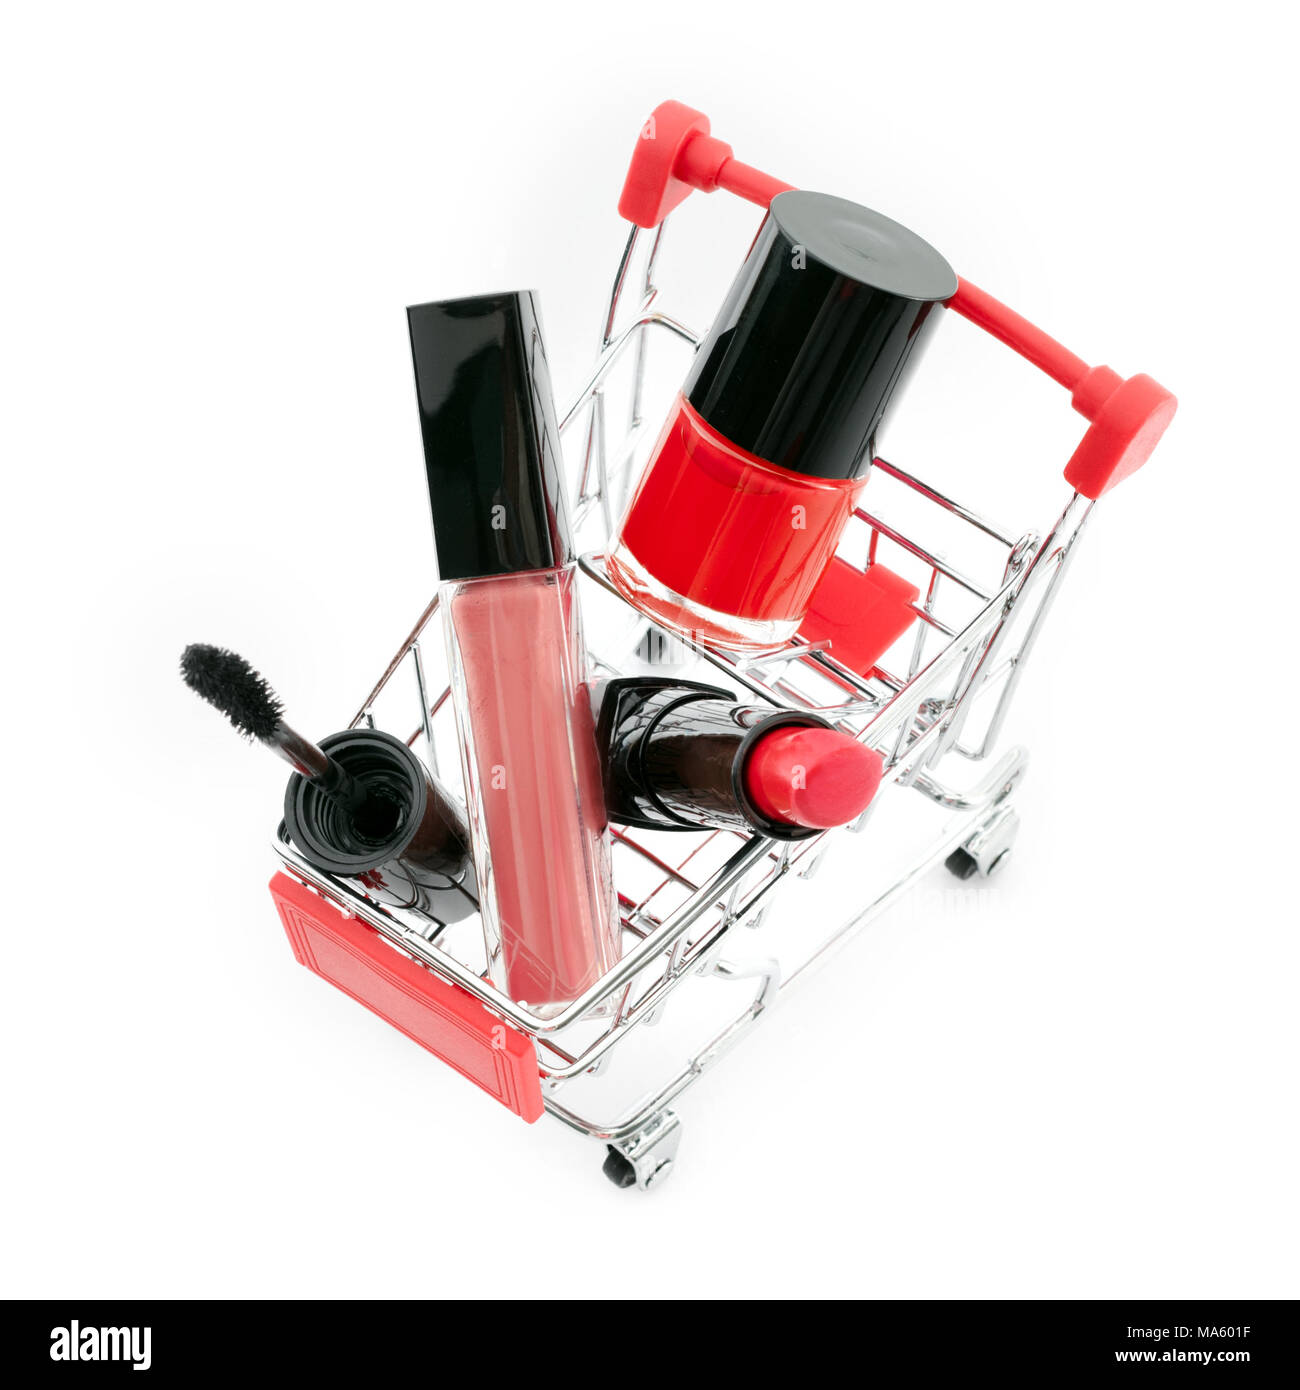 f27589562d0 Makeup in pushcart isolated on white background. Red lipstick, mascara,  pink lip gloss, powder, nail polish. Makeup products in shopping cart,  discoun